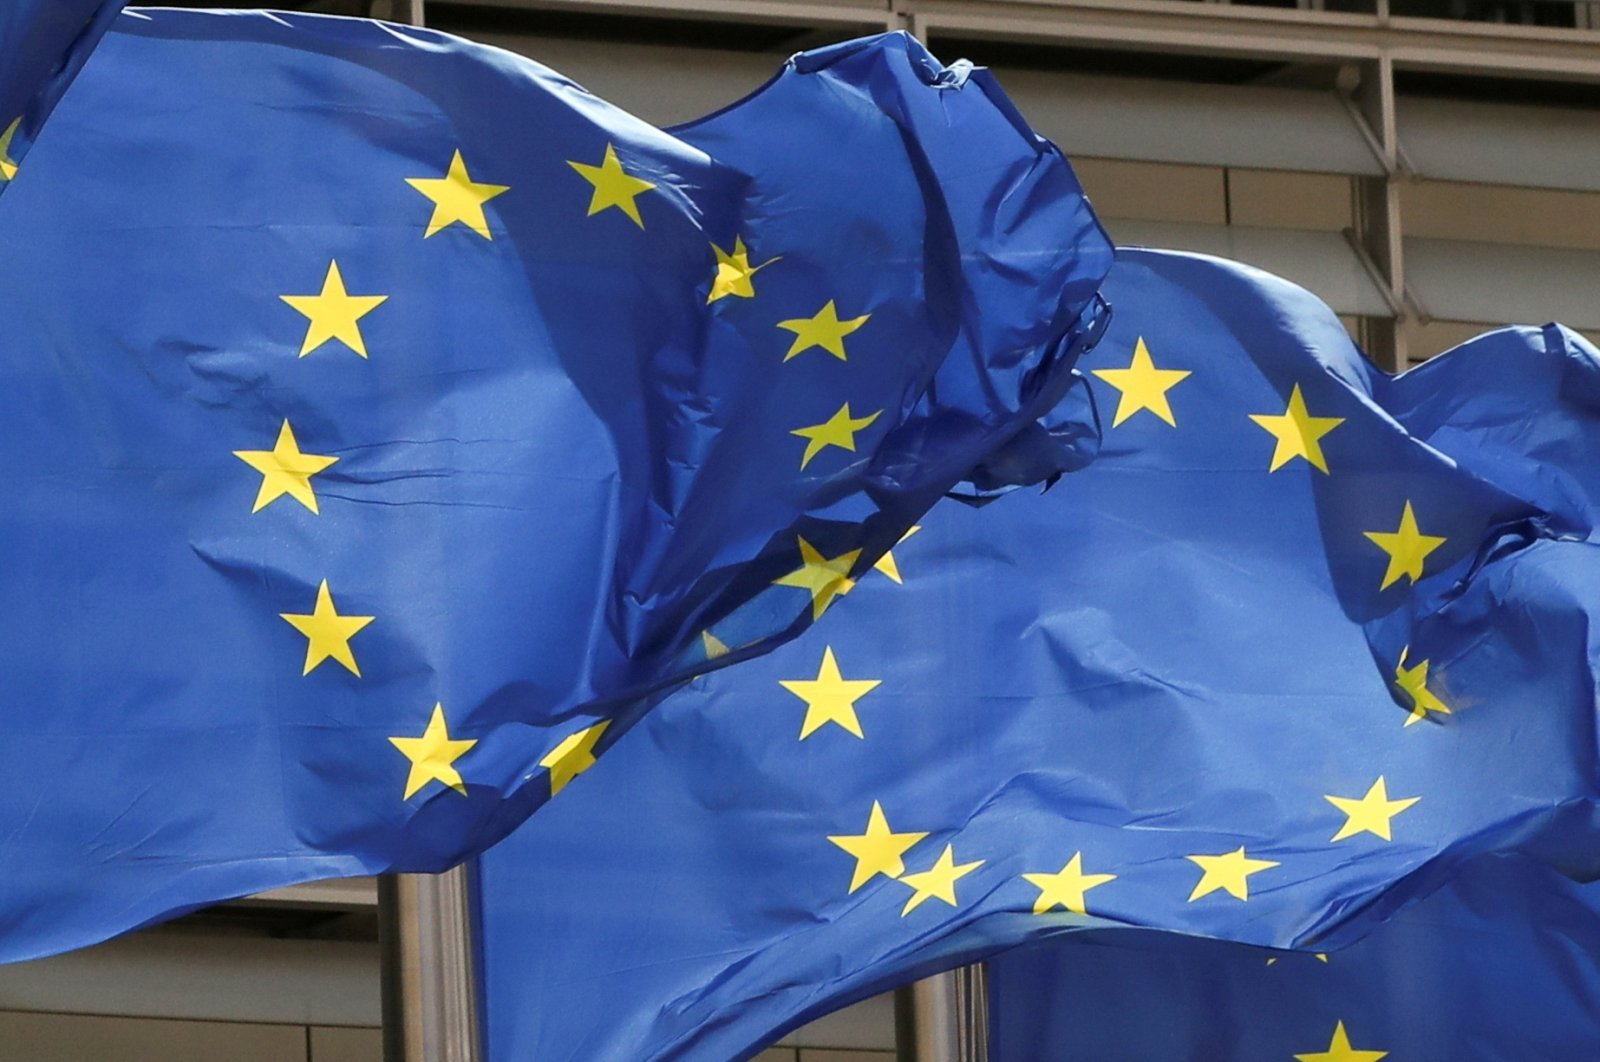 European Union flags flutter outside the EU Commission headquarters in Brussels, Belgium May 5, 2021. (Reuters Photo)